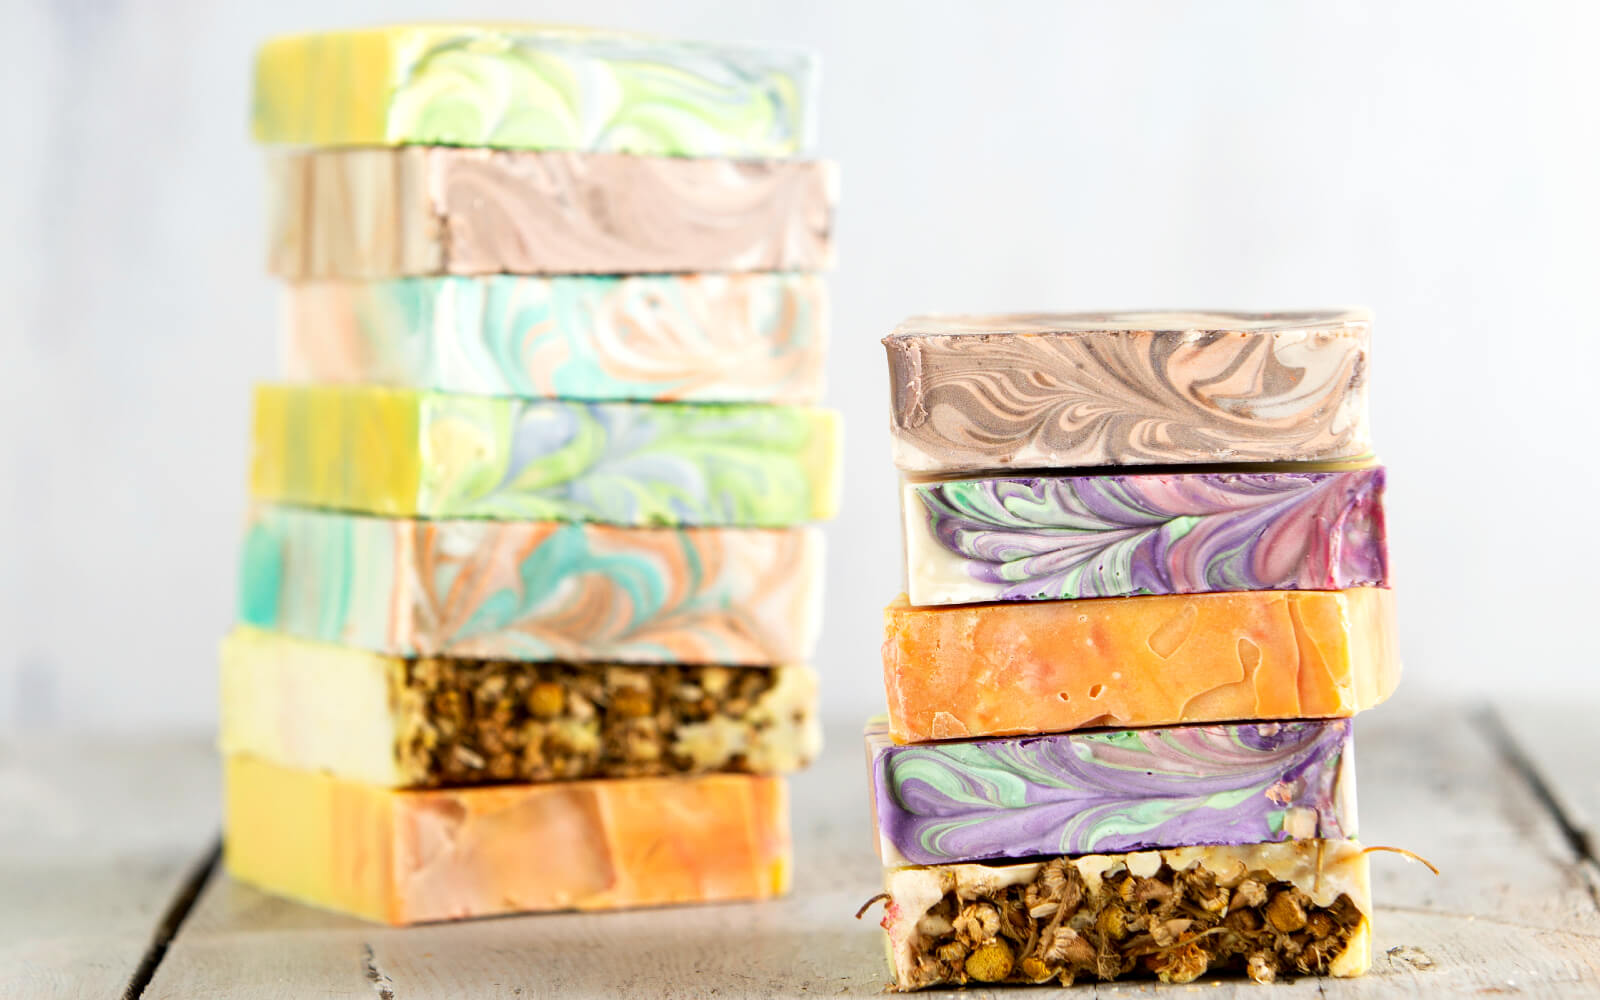 Luxury hand made naturally scented castile palm free soaps